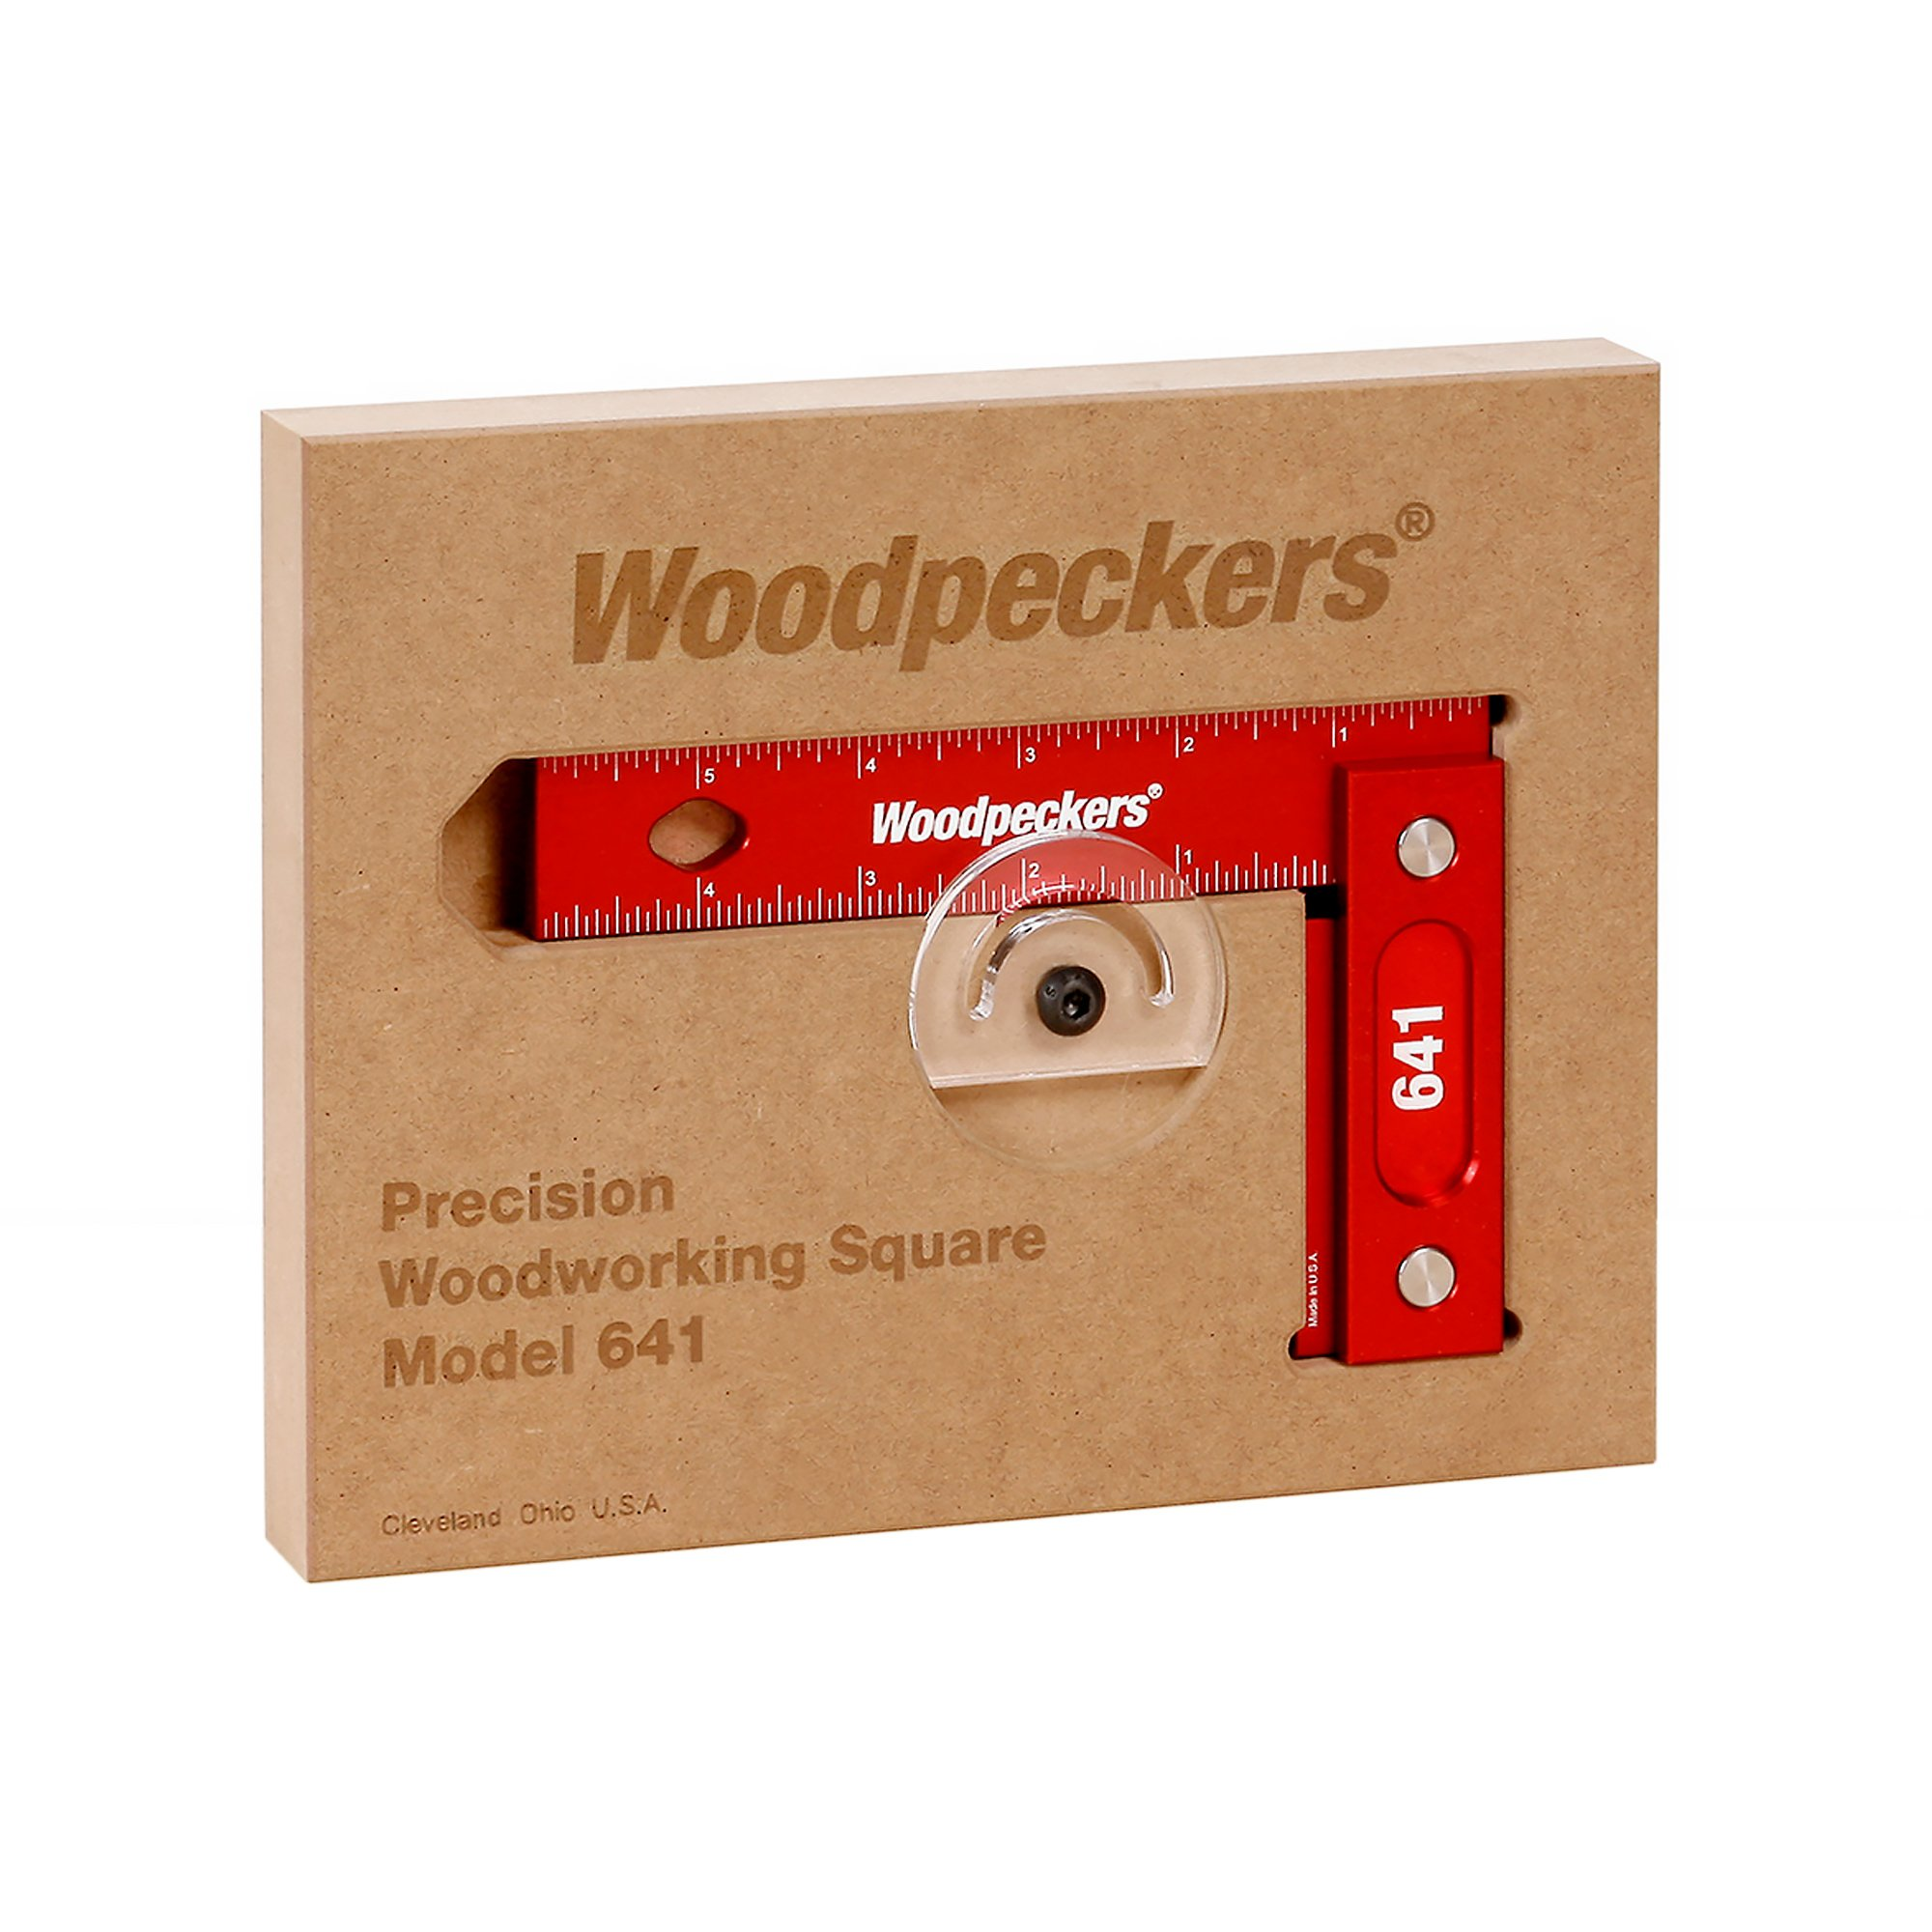 Woodpeckers Precision Woodworking Square 6'' x 4'', Wall-Mountable, Imperial by Woodpeckers (Image #1)